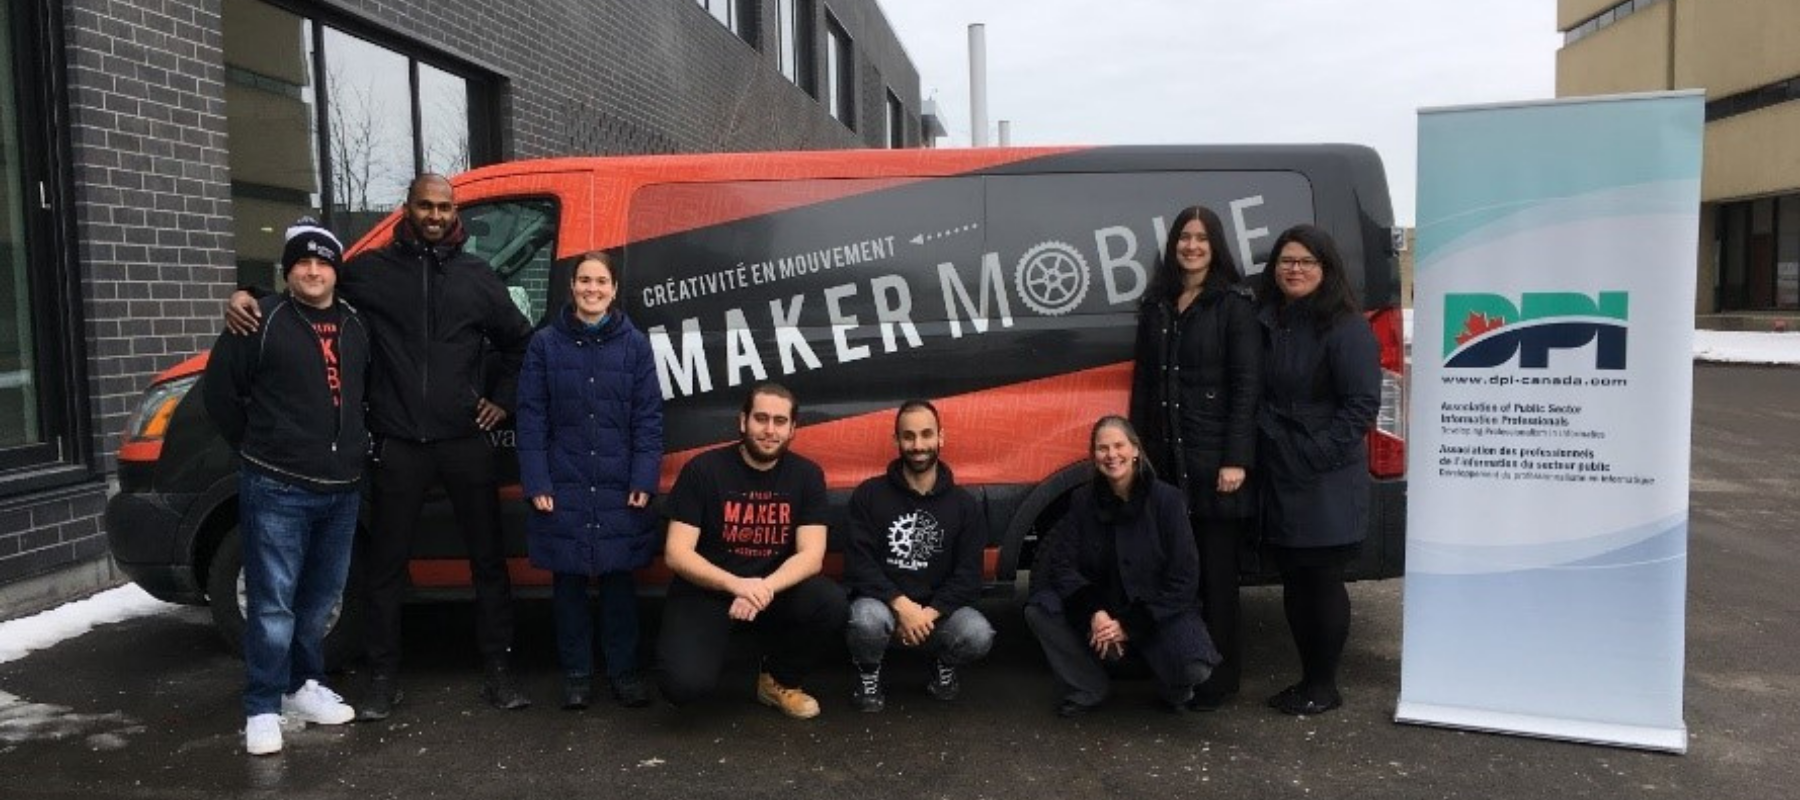 People posing in front of the Makermobile